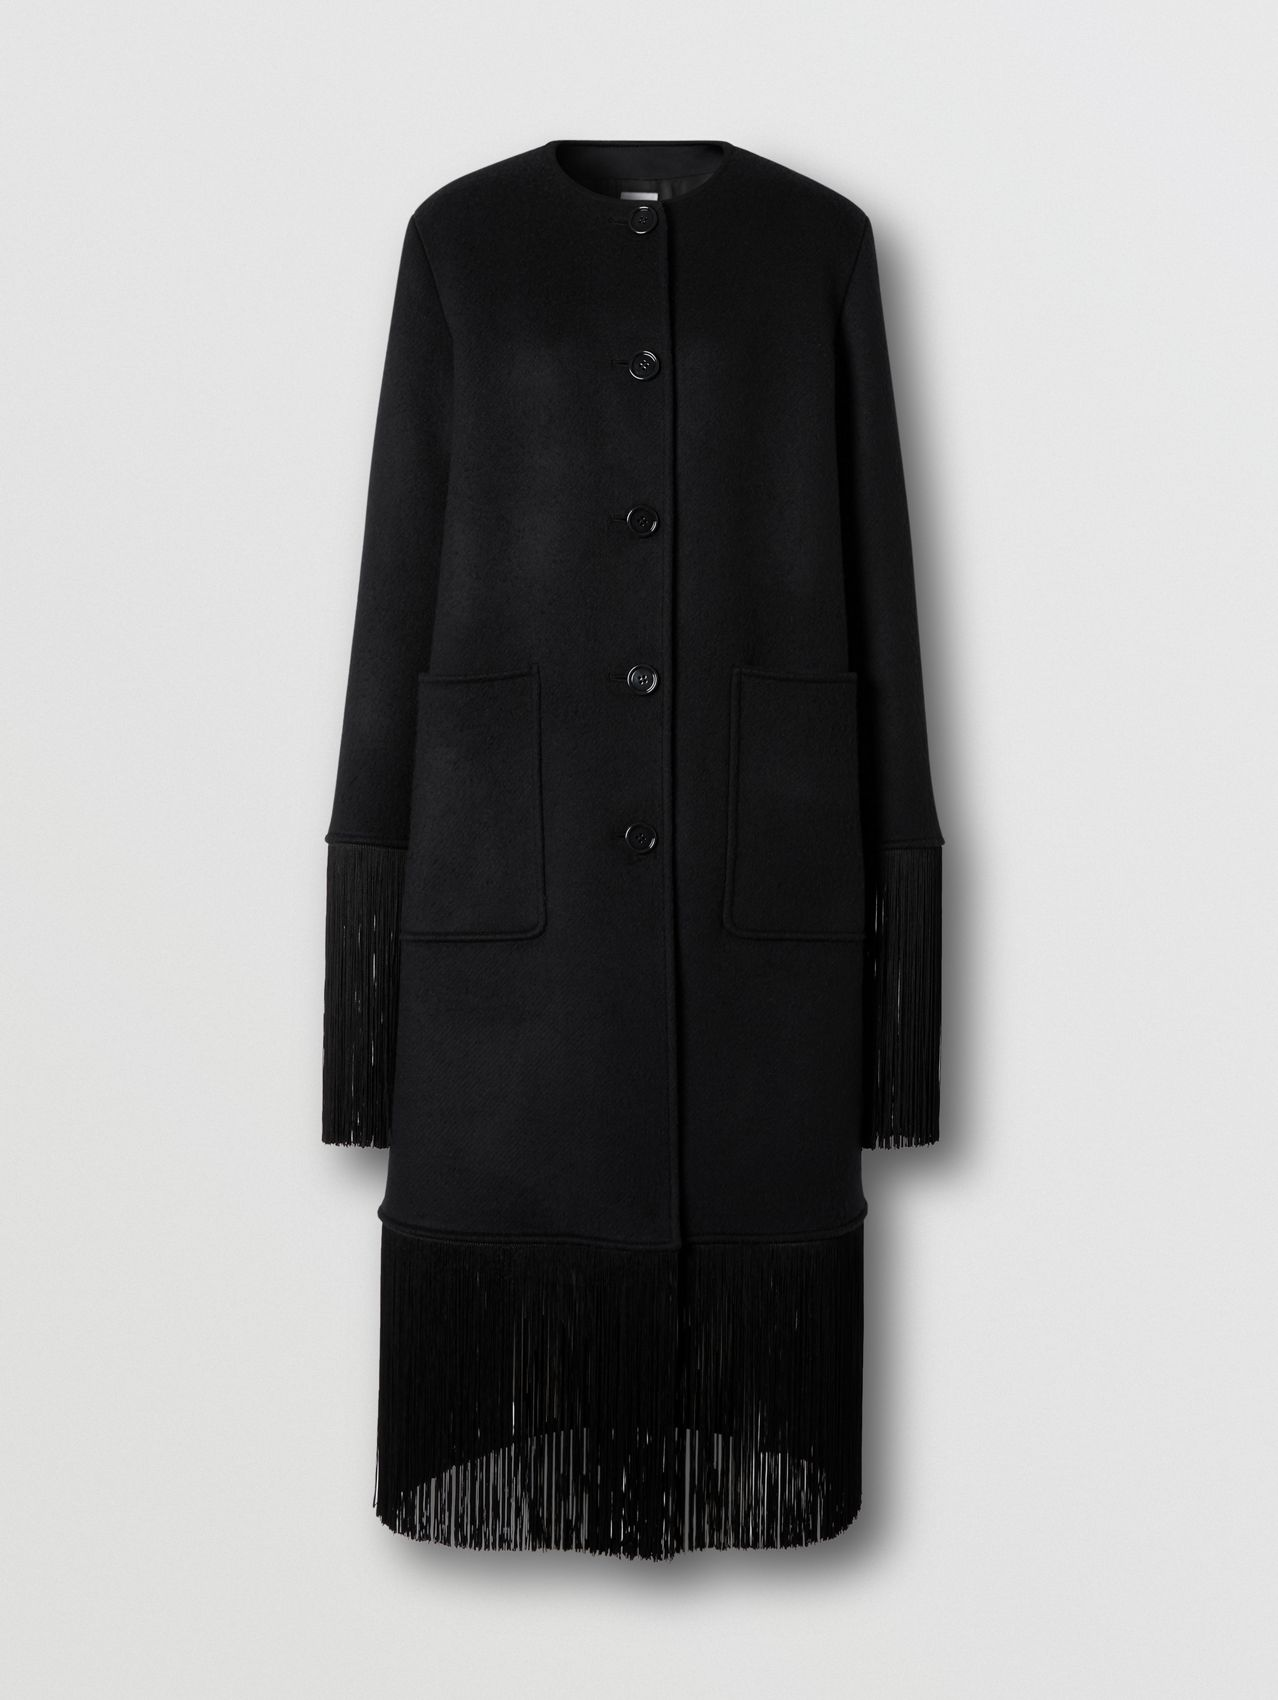 Fringed Double-faced Wool Cashmere Car Coat in Black